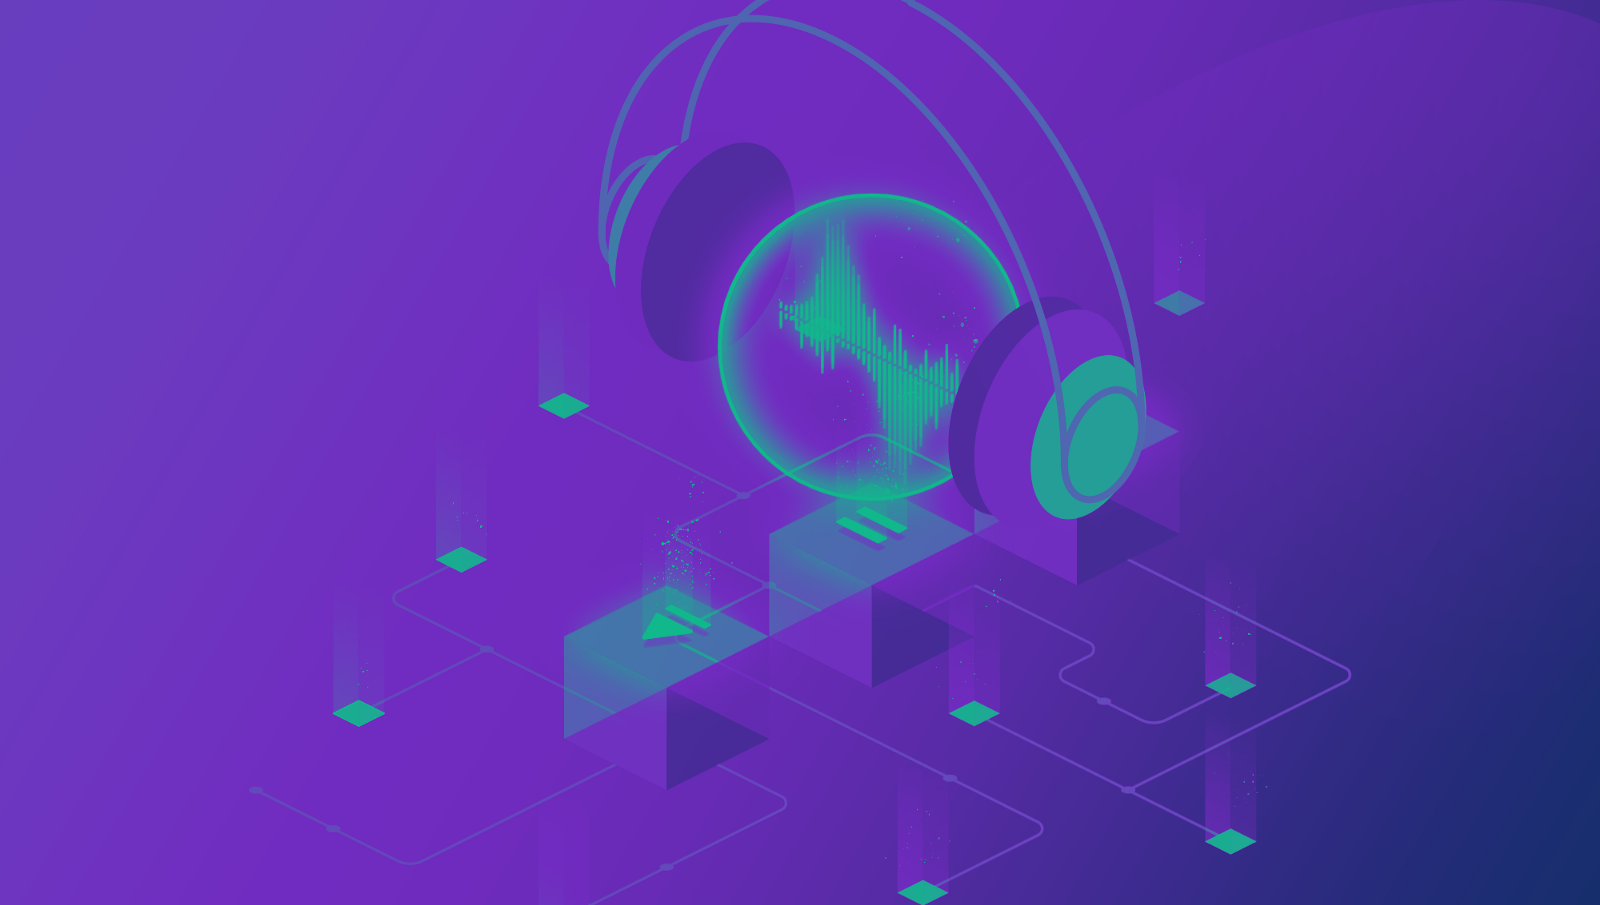 /music-tech-trends-to-bolster-the-music-industry-in-2019-23394f94fea0 feature image